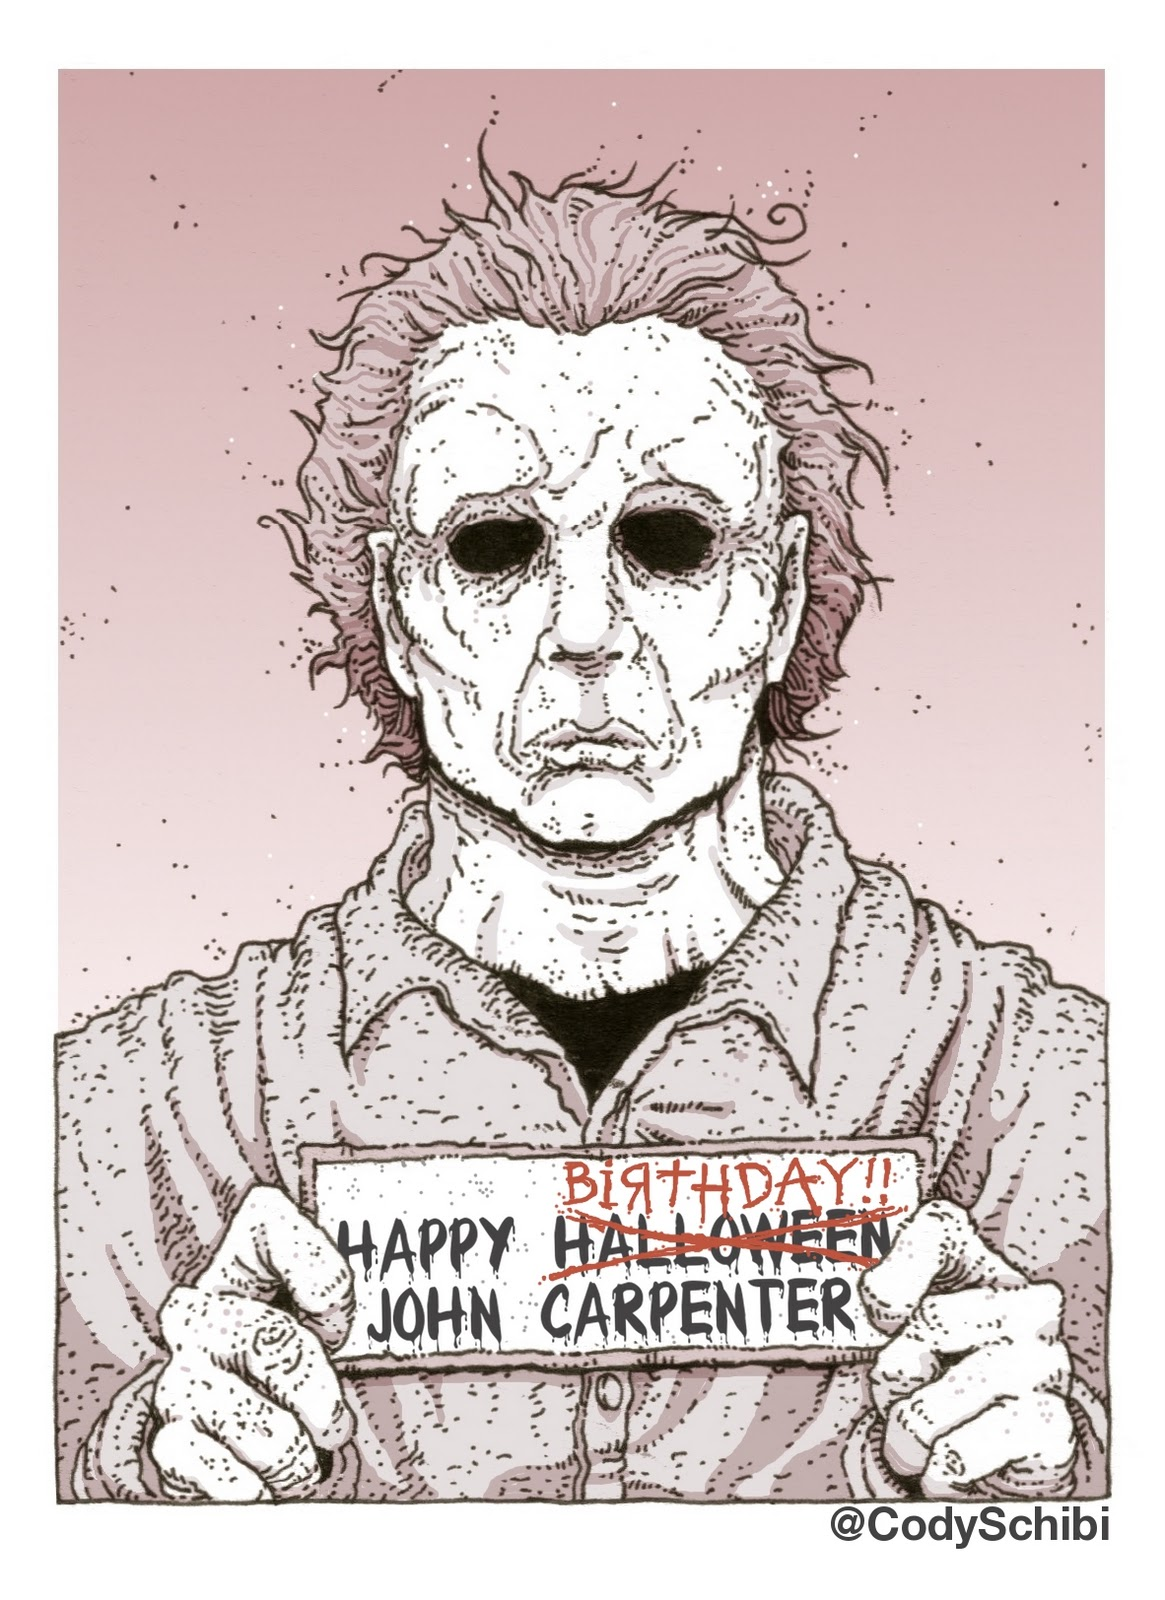 happy birthday drawing ideas ; cody+schibi+michael+myers+john+carpenter+halloween+birthday